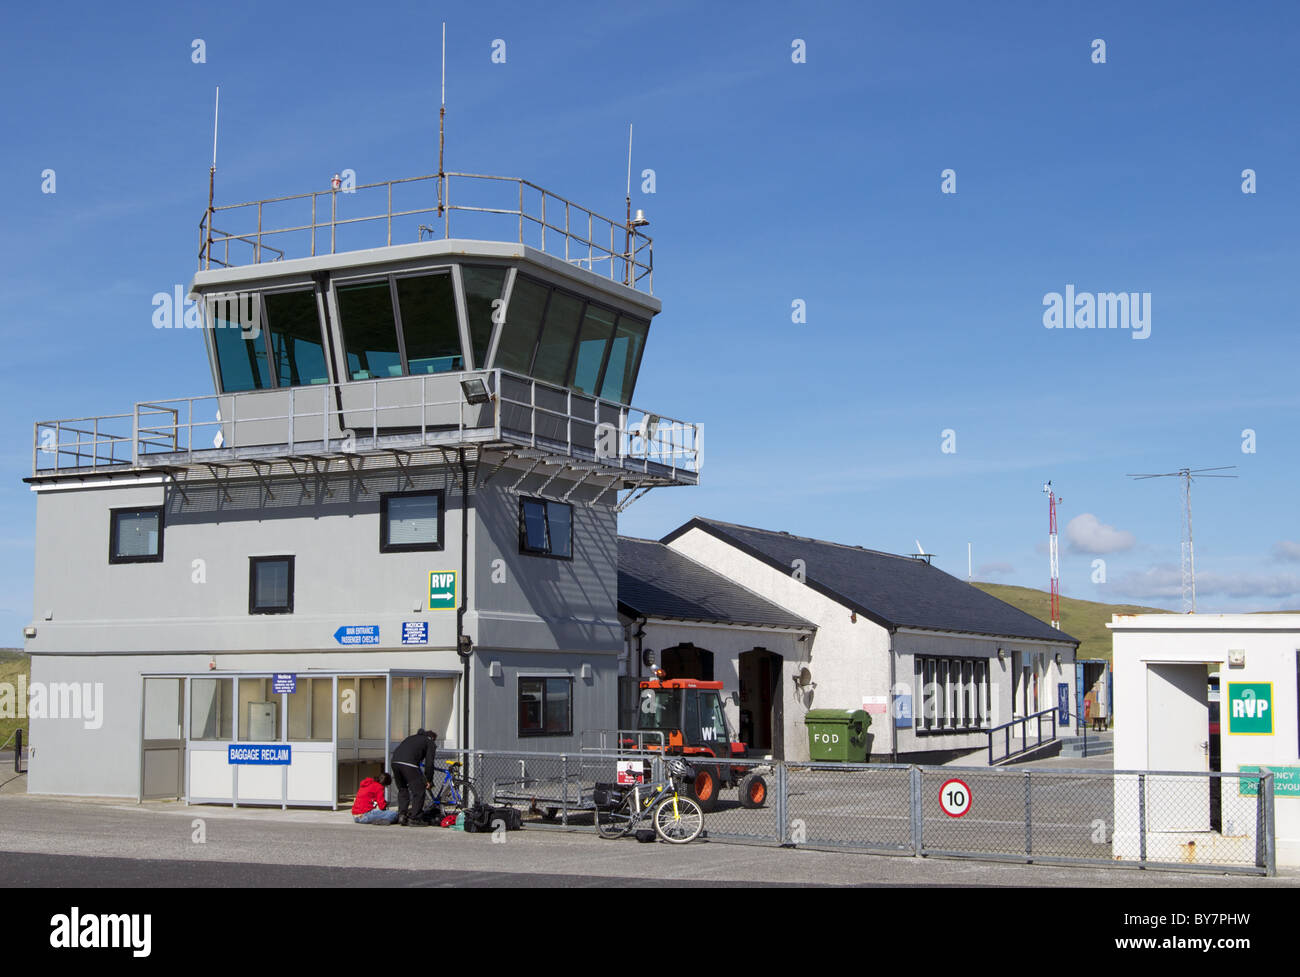 Barra Airport on Isle of Barra, Outer Hebrides, Scotland - Stock Image